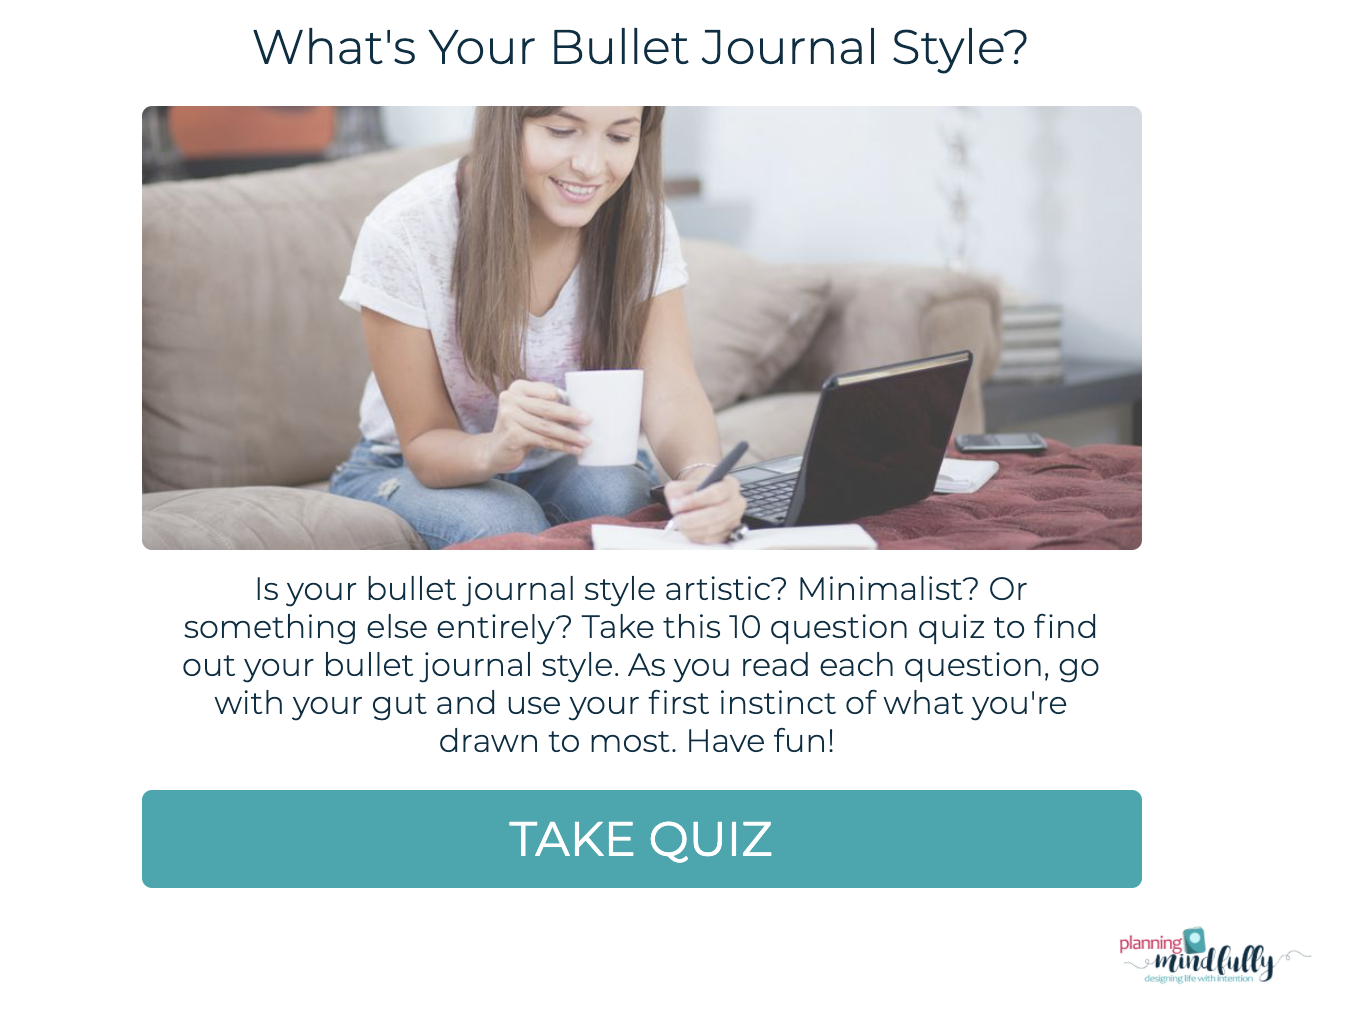 What's your bullet journal style quiz cover